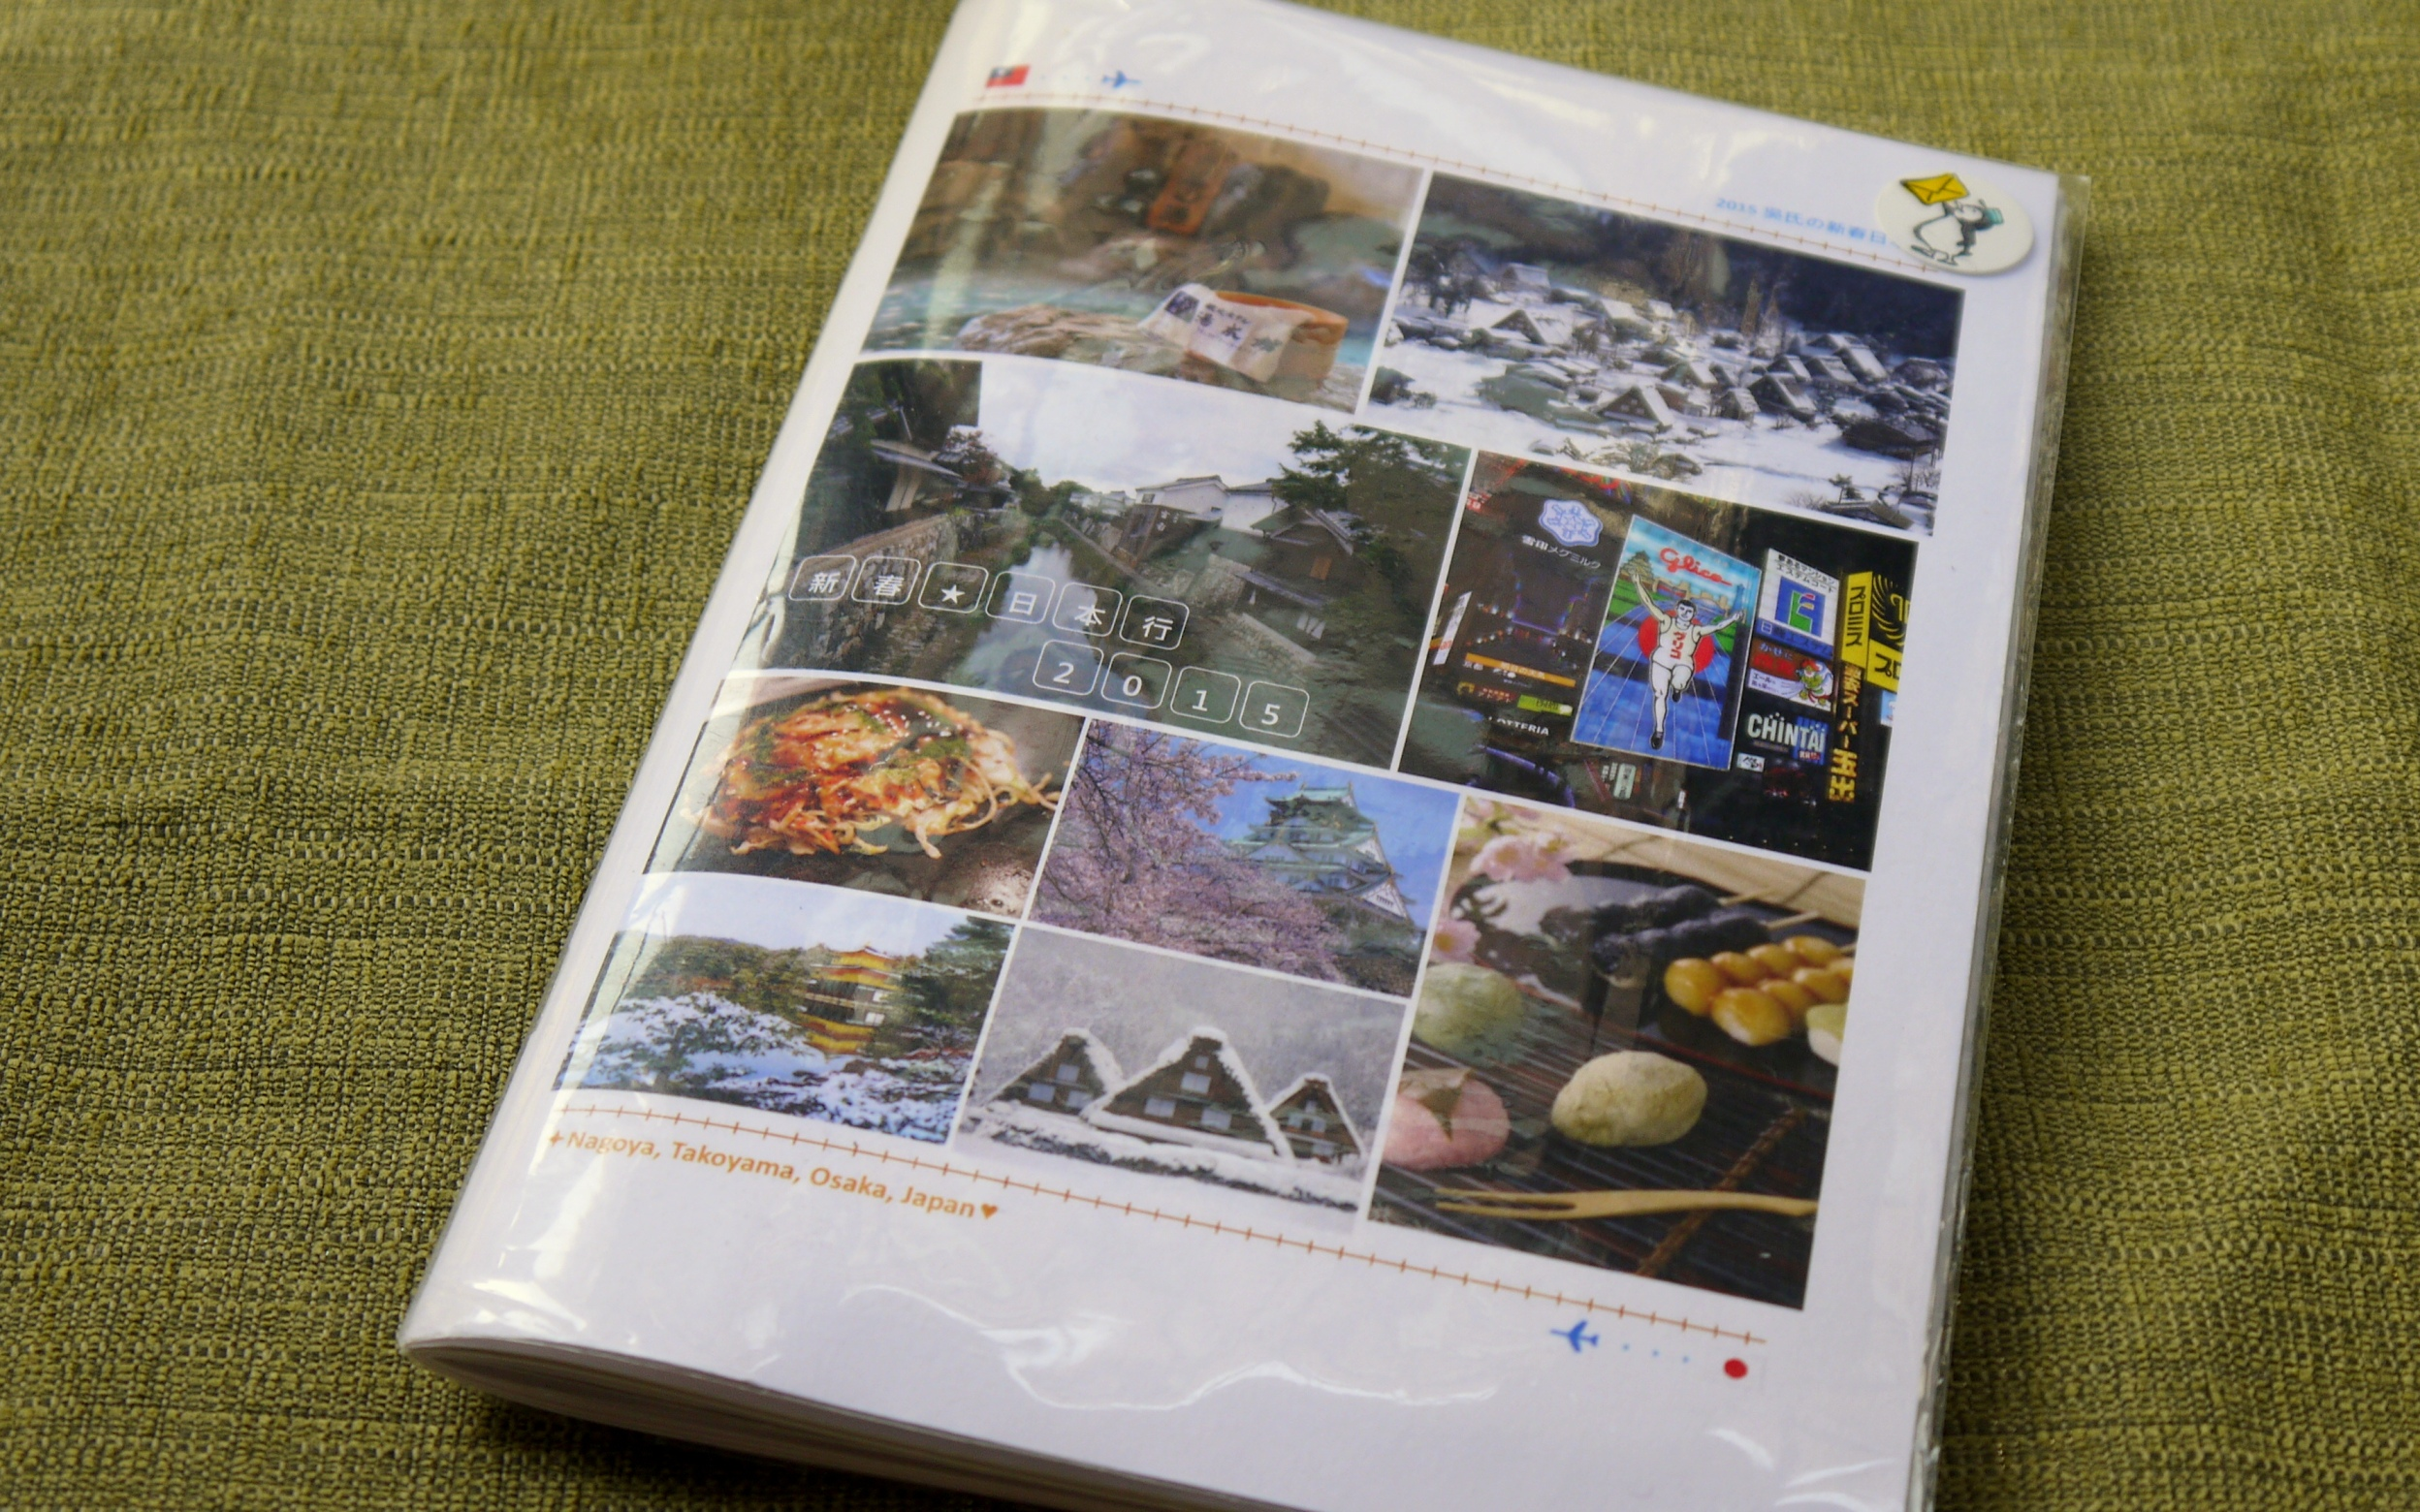 How to make scrapbook journal - On This Family Trip During Chinese New Year To Japan I Put Together A Custom Travel Journal Just For This Purpose In This Travel Scrapbook